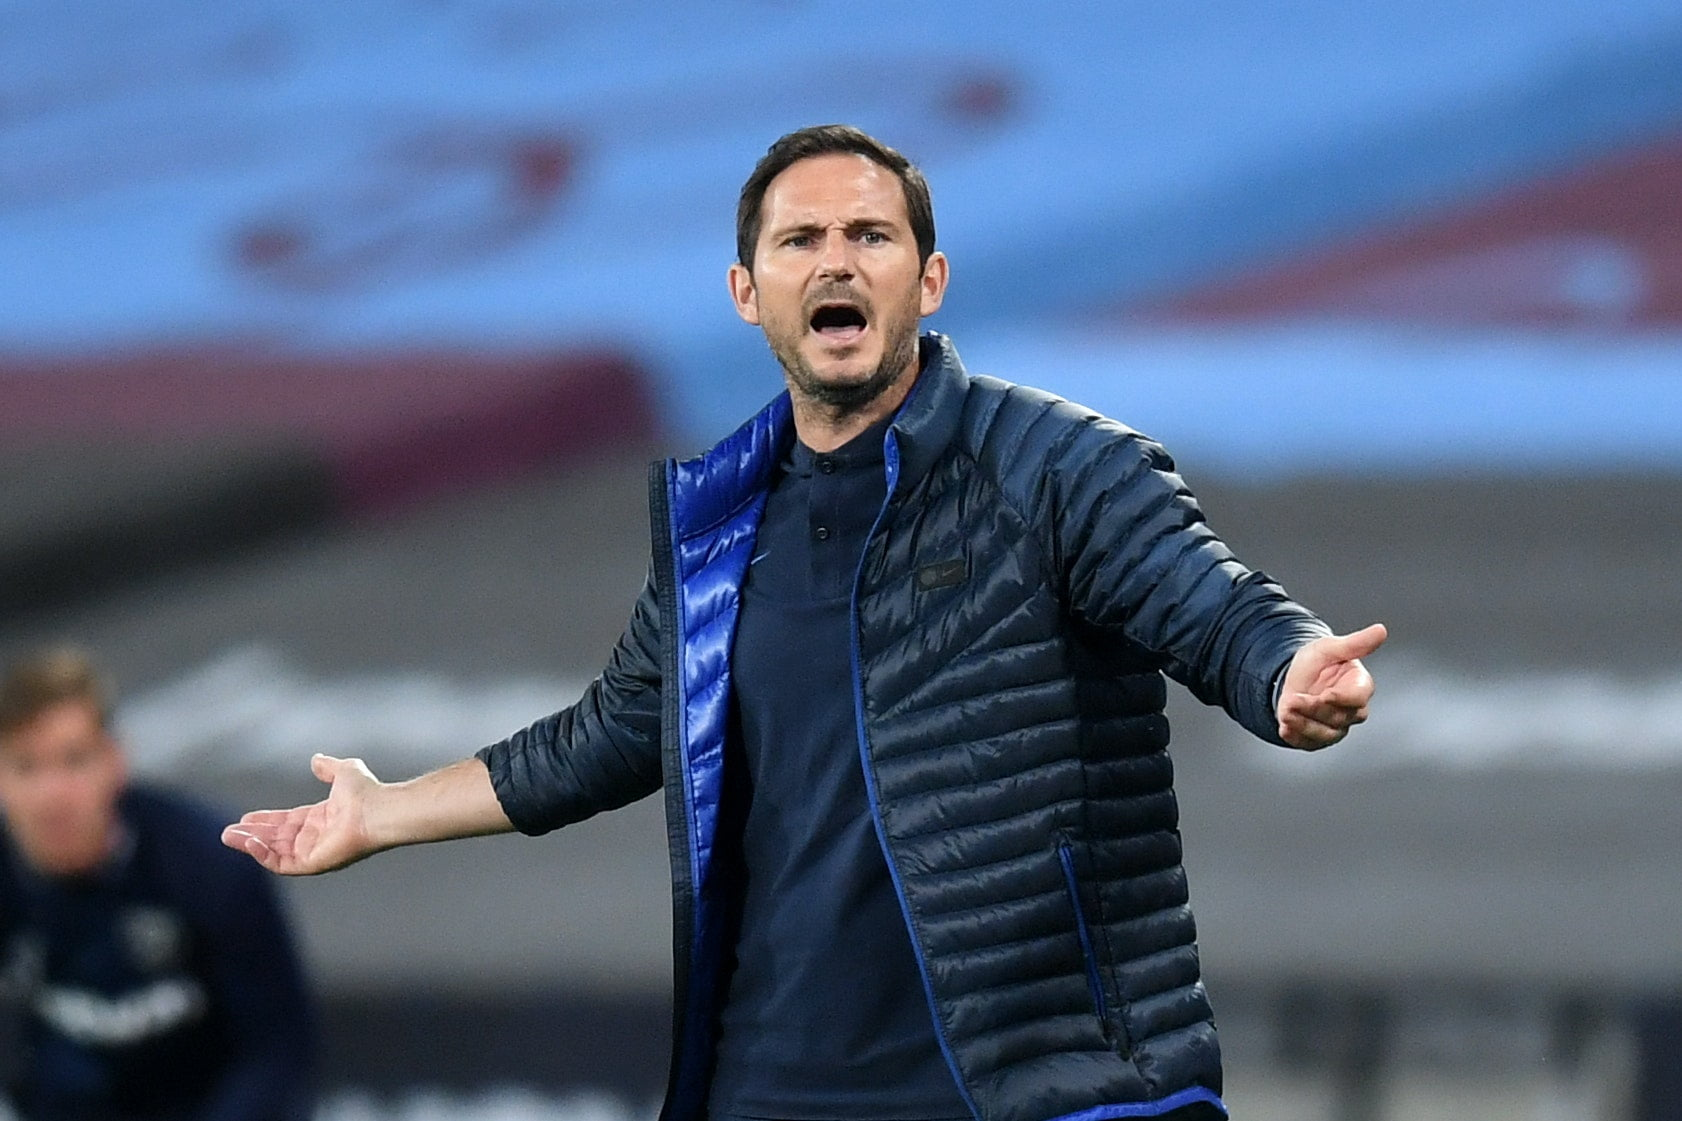 Leicester City vs Chelsea: Lampard blasts Havertz, others after EPL 2-0 defeat